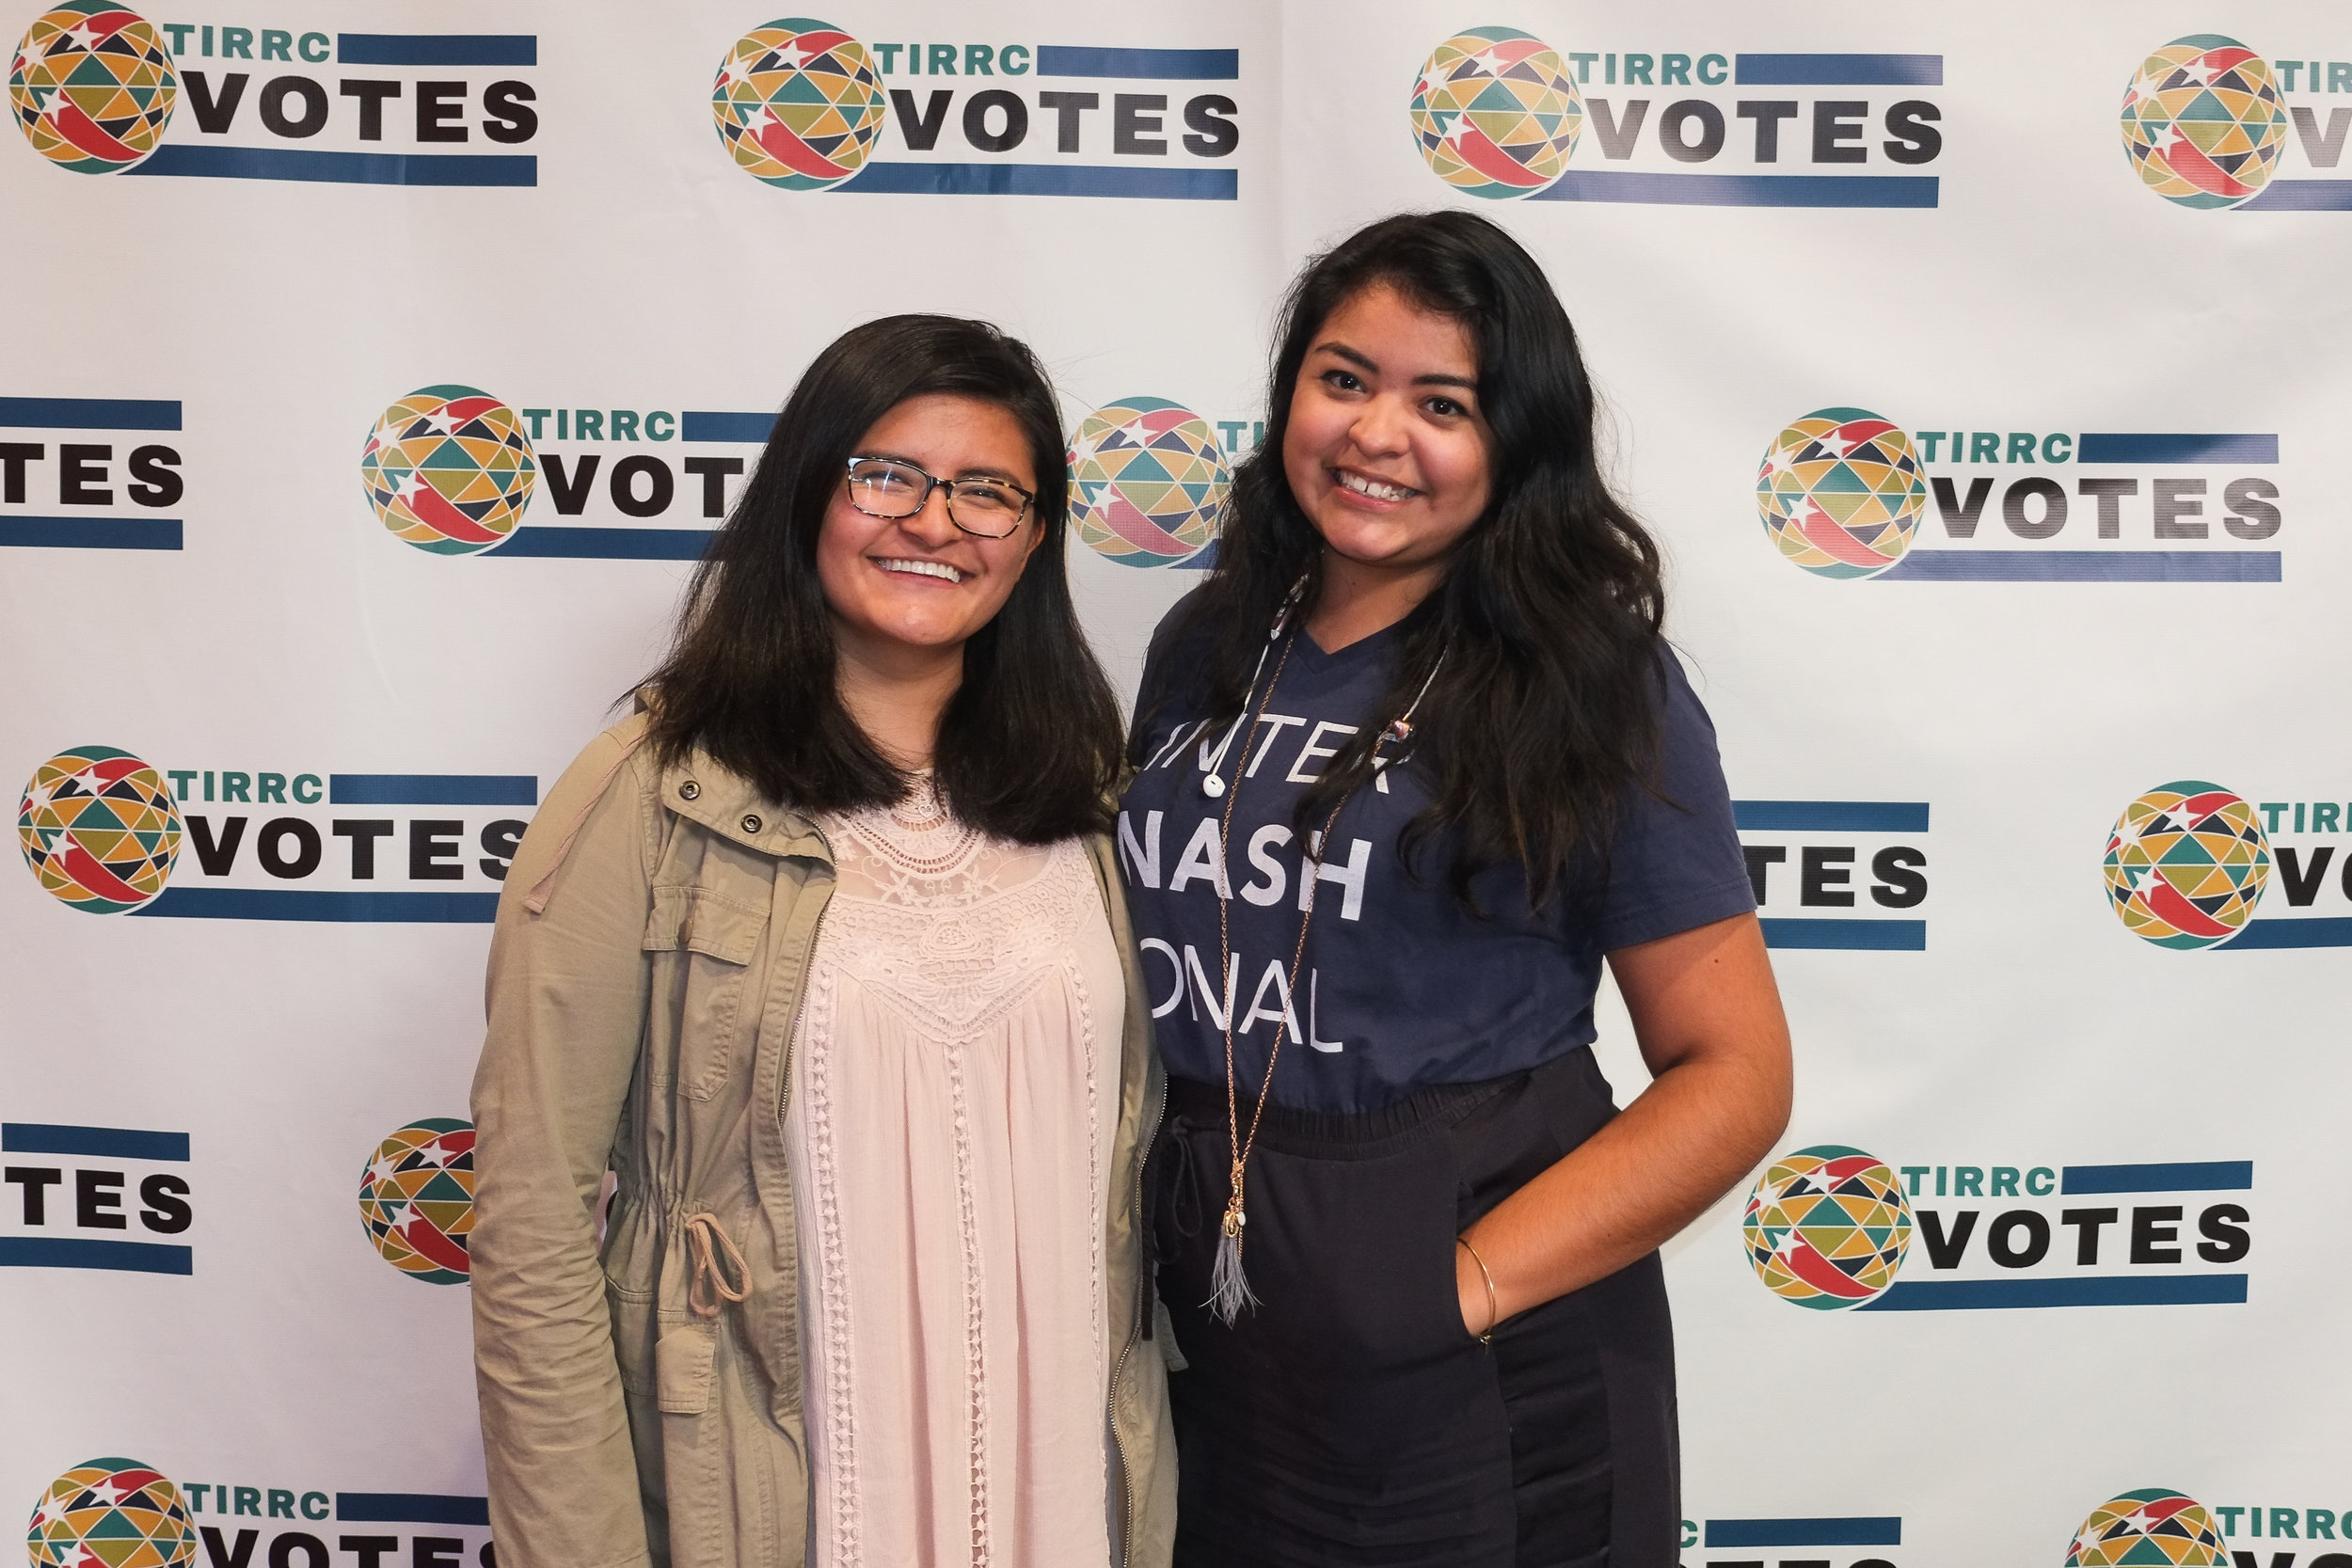 TIRRCVotes-PhotoBooth-20.jpg